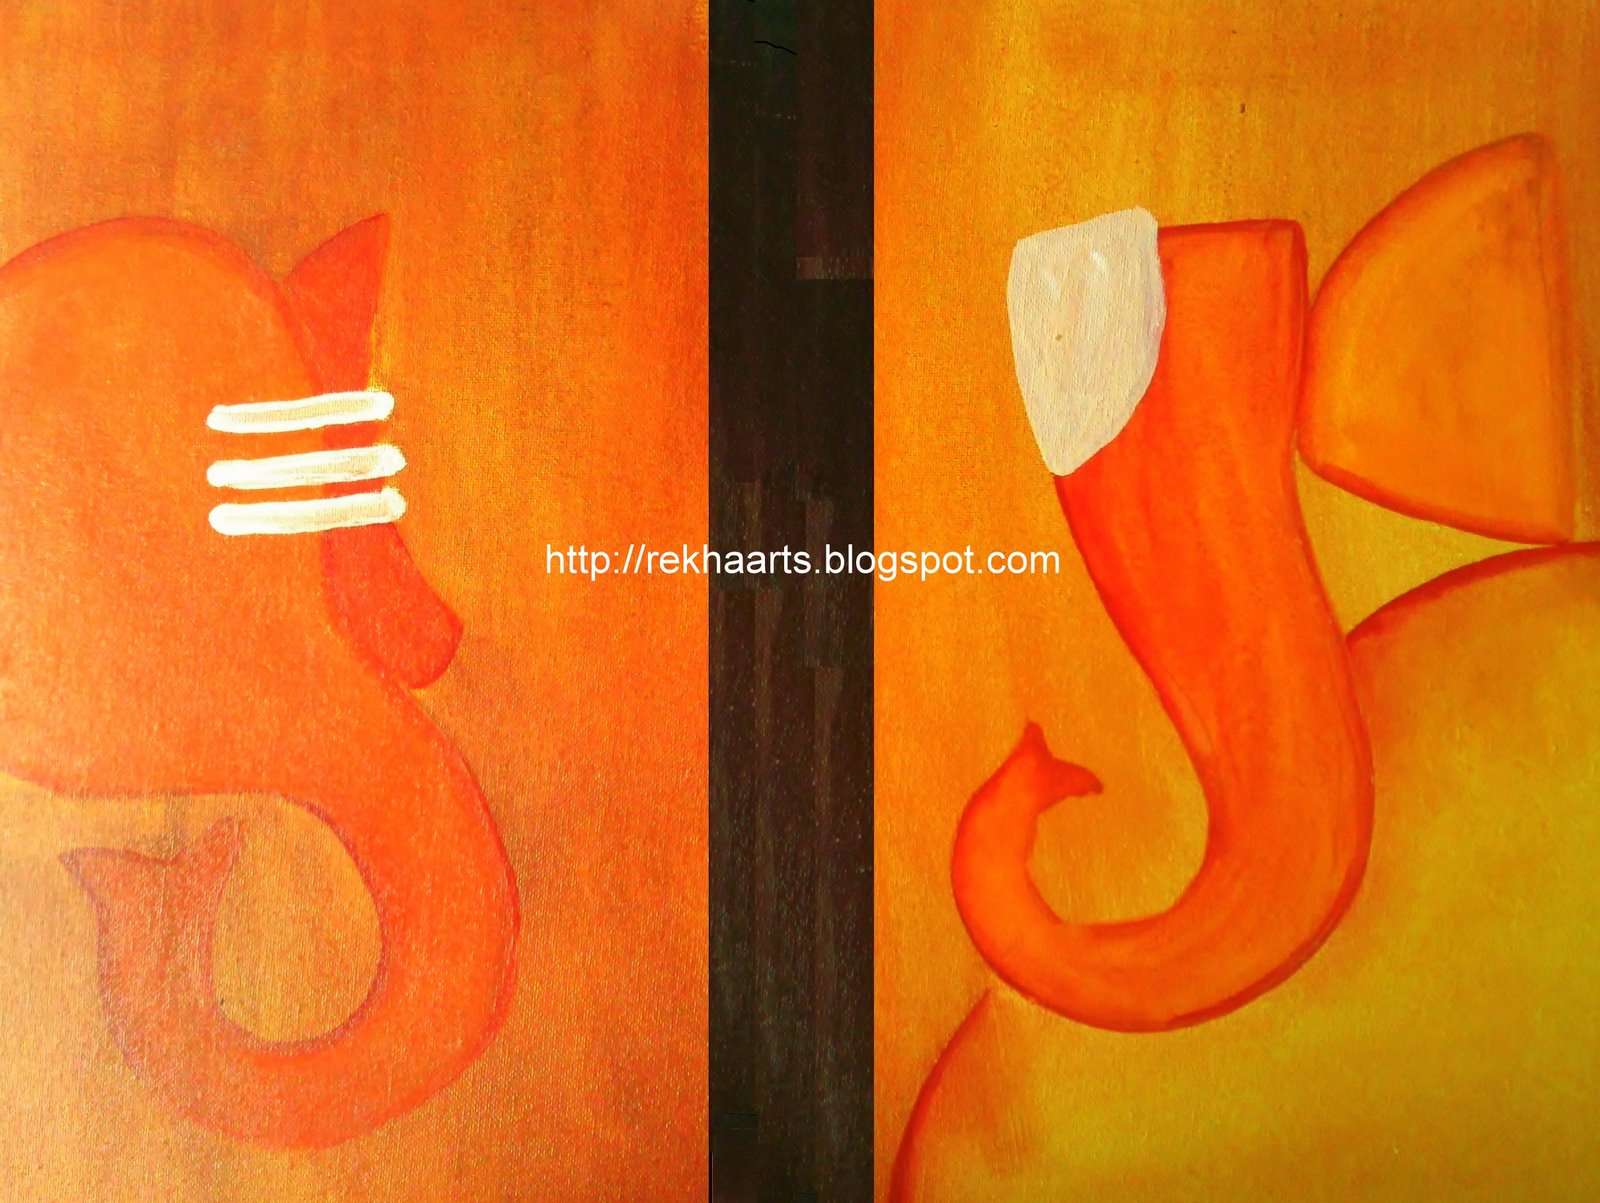 ganesha paintings modern art - photo #19